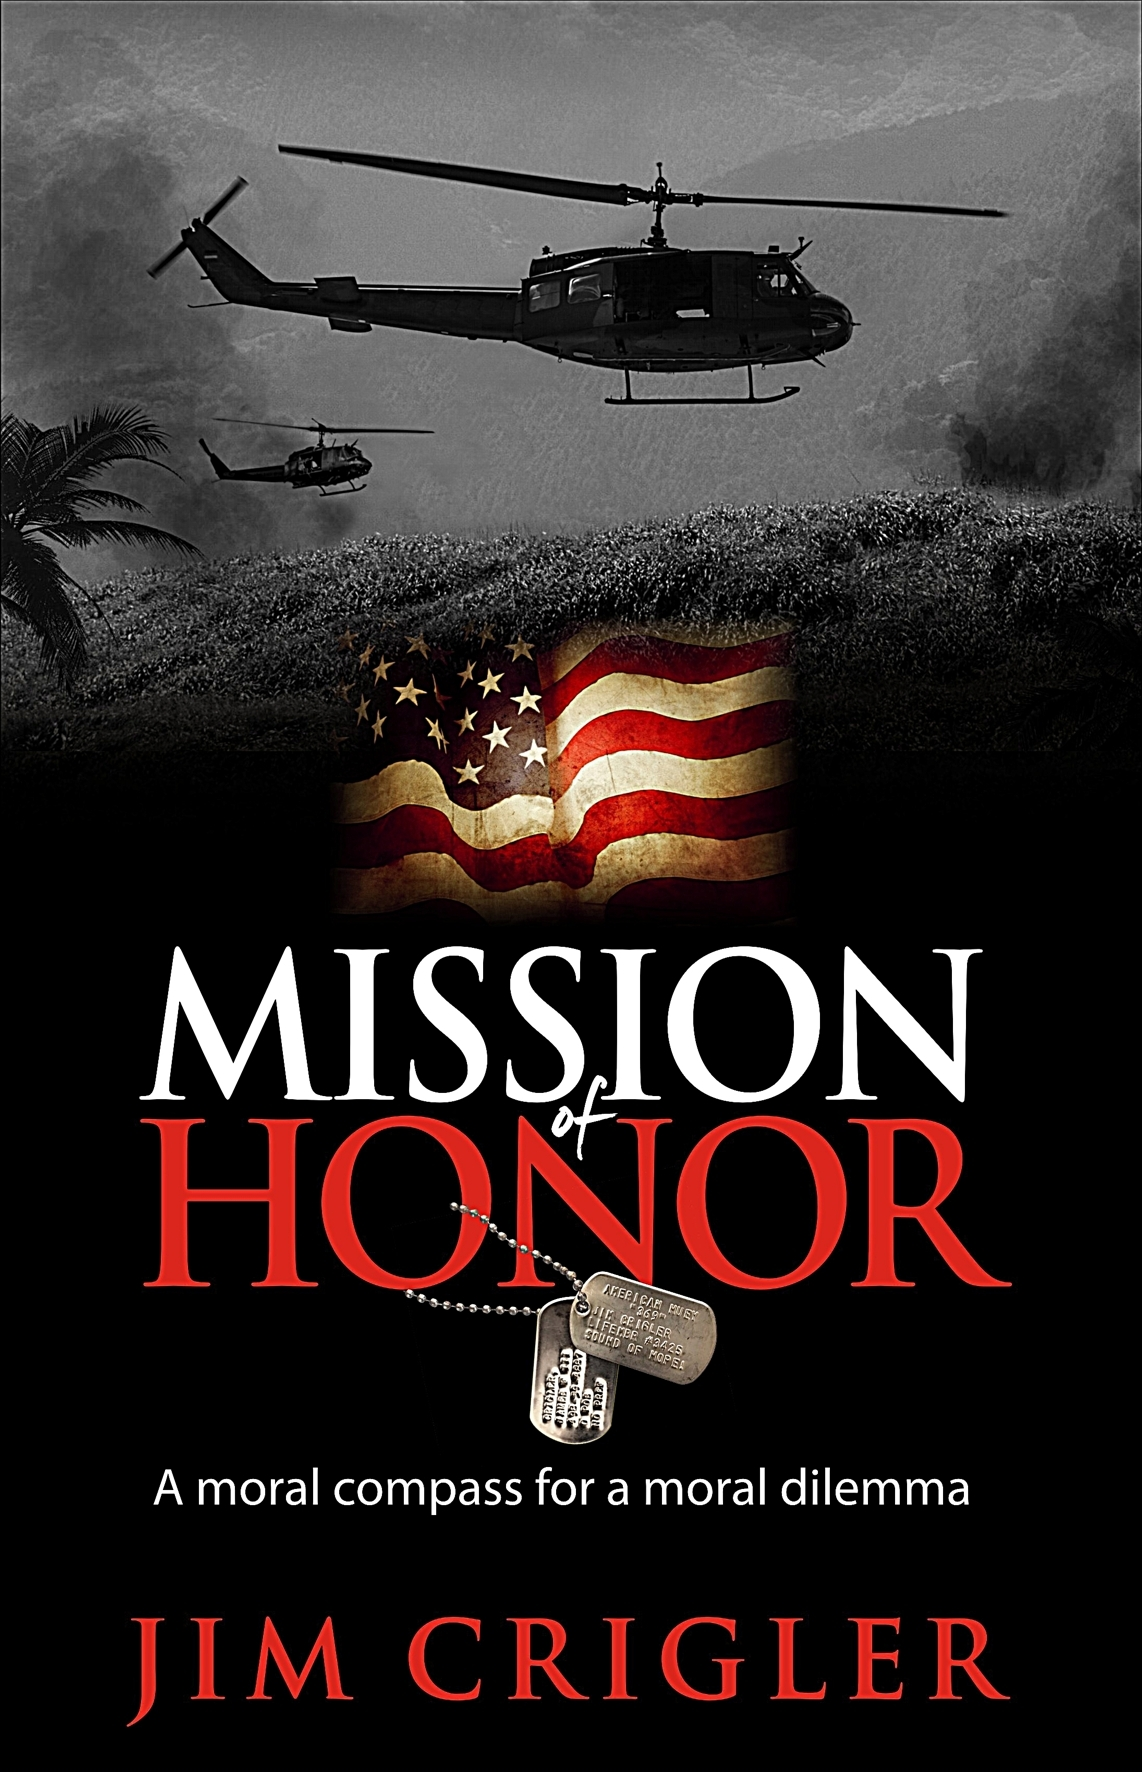 Mission of honor book cover final